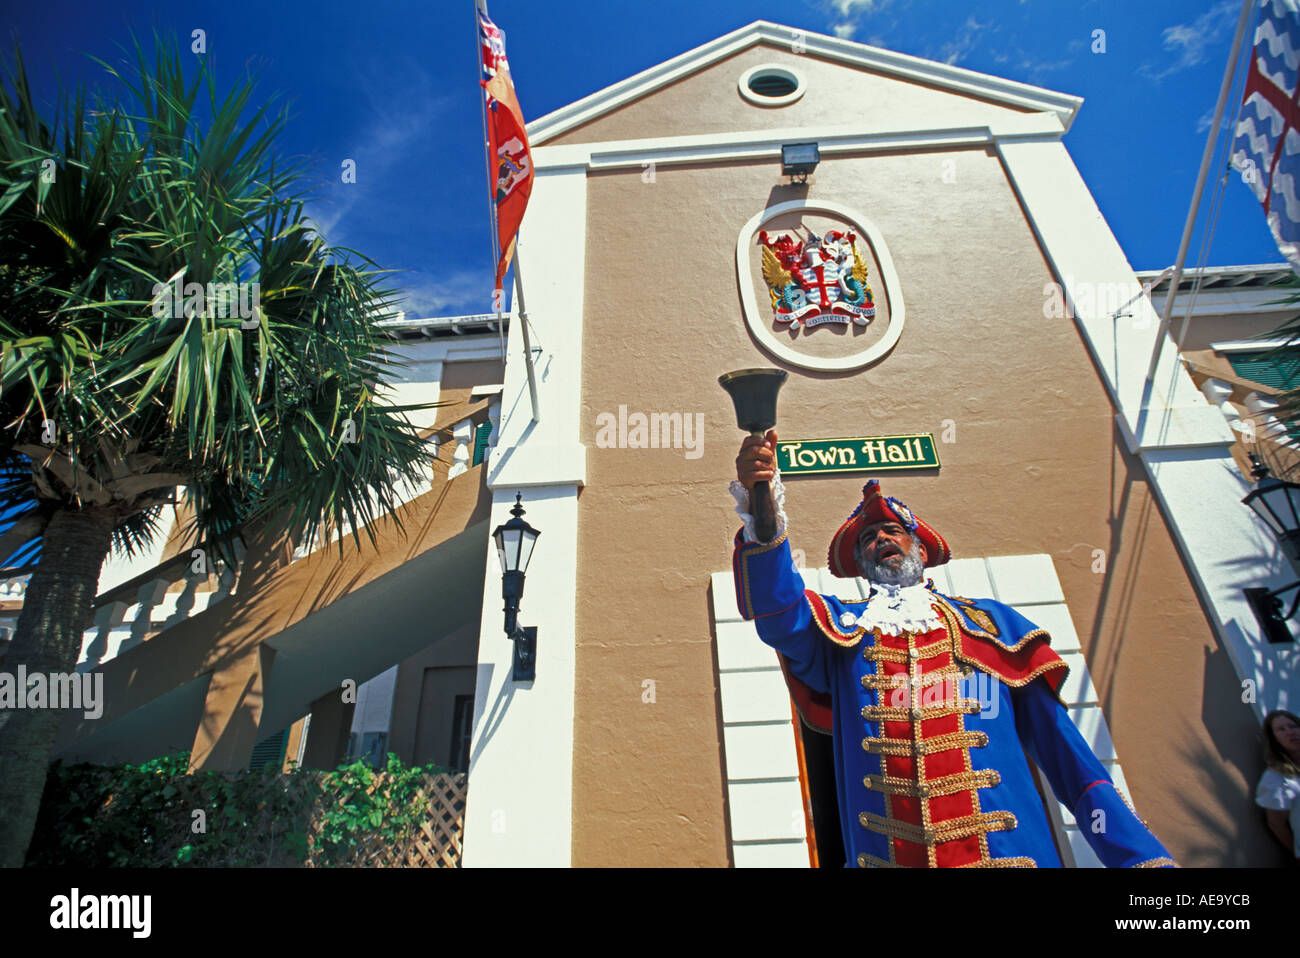 in-the-town-of-st-george-bermuda-the-town-cryer-rings-a-bell-to-call-AE9YCB.jpg